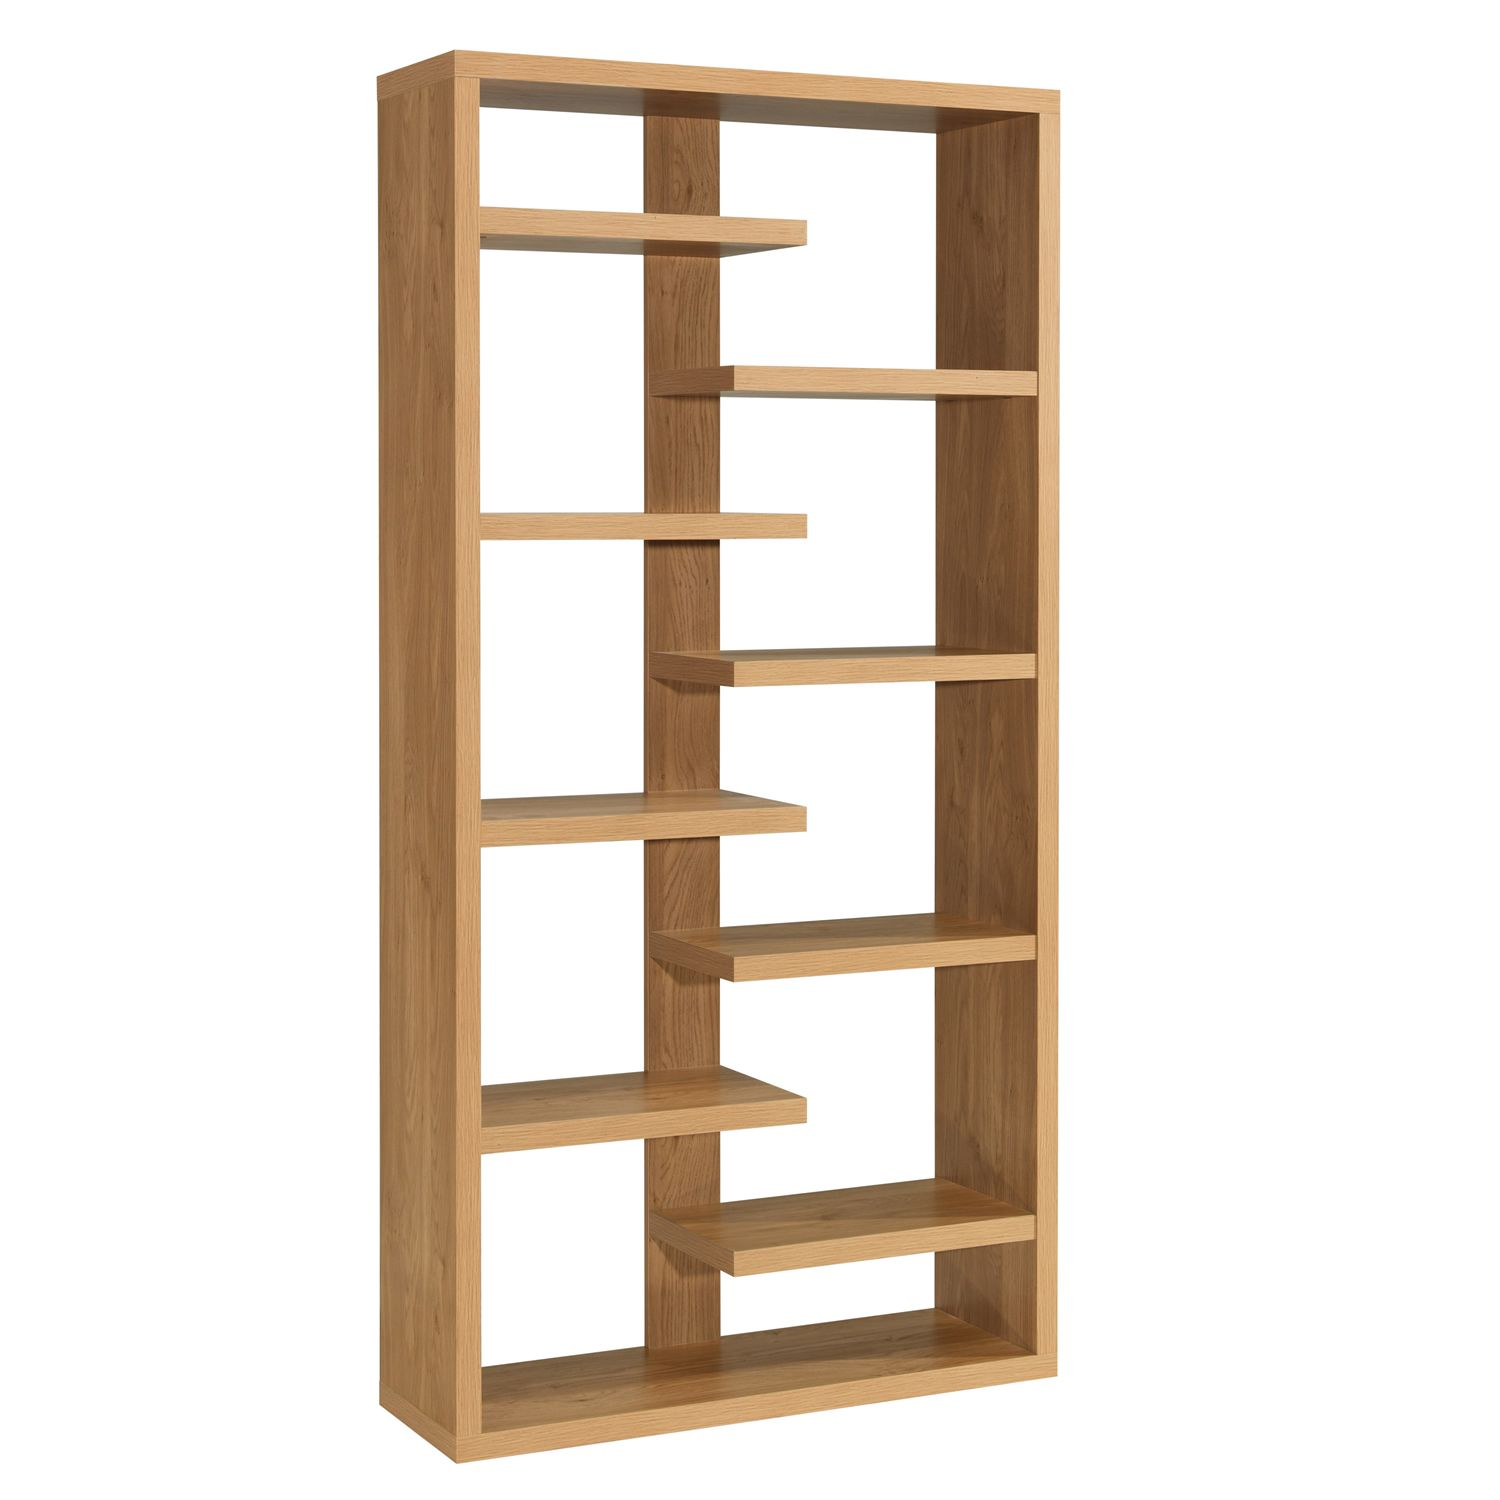 storage shelves shelving units storage units room dividers dining room